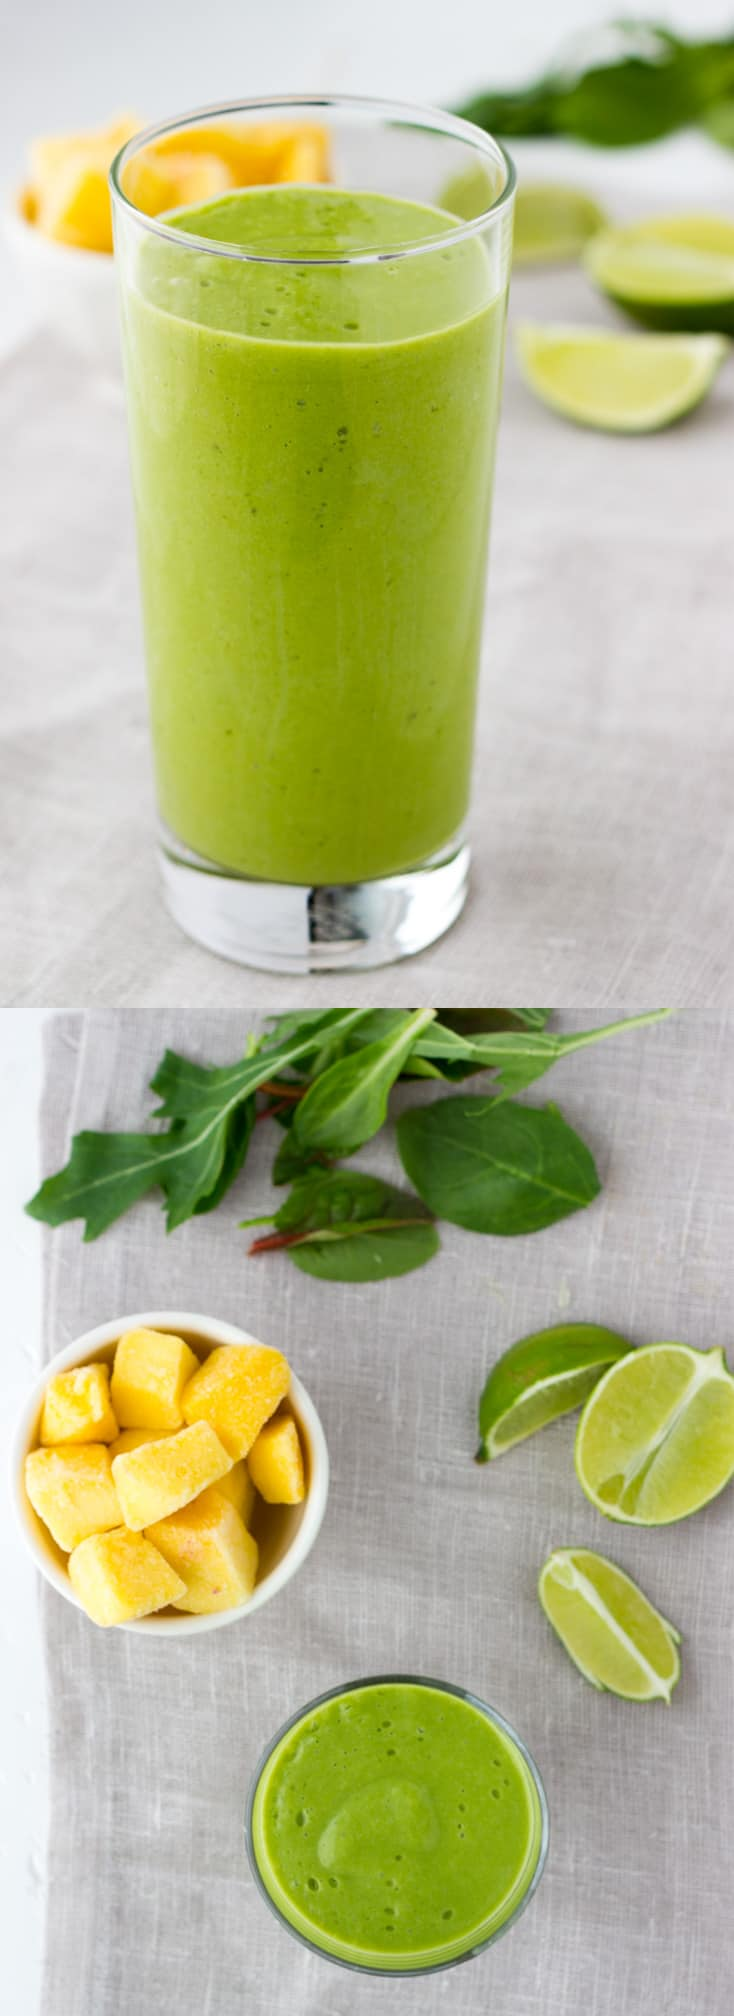 Coconut Lime Green Smoothie! A refreshing, creamy and citrusy green smoothie with a hint of tart. Full of good fats!